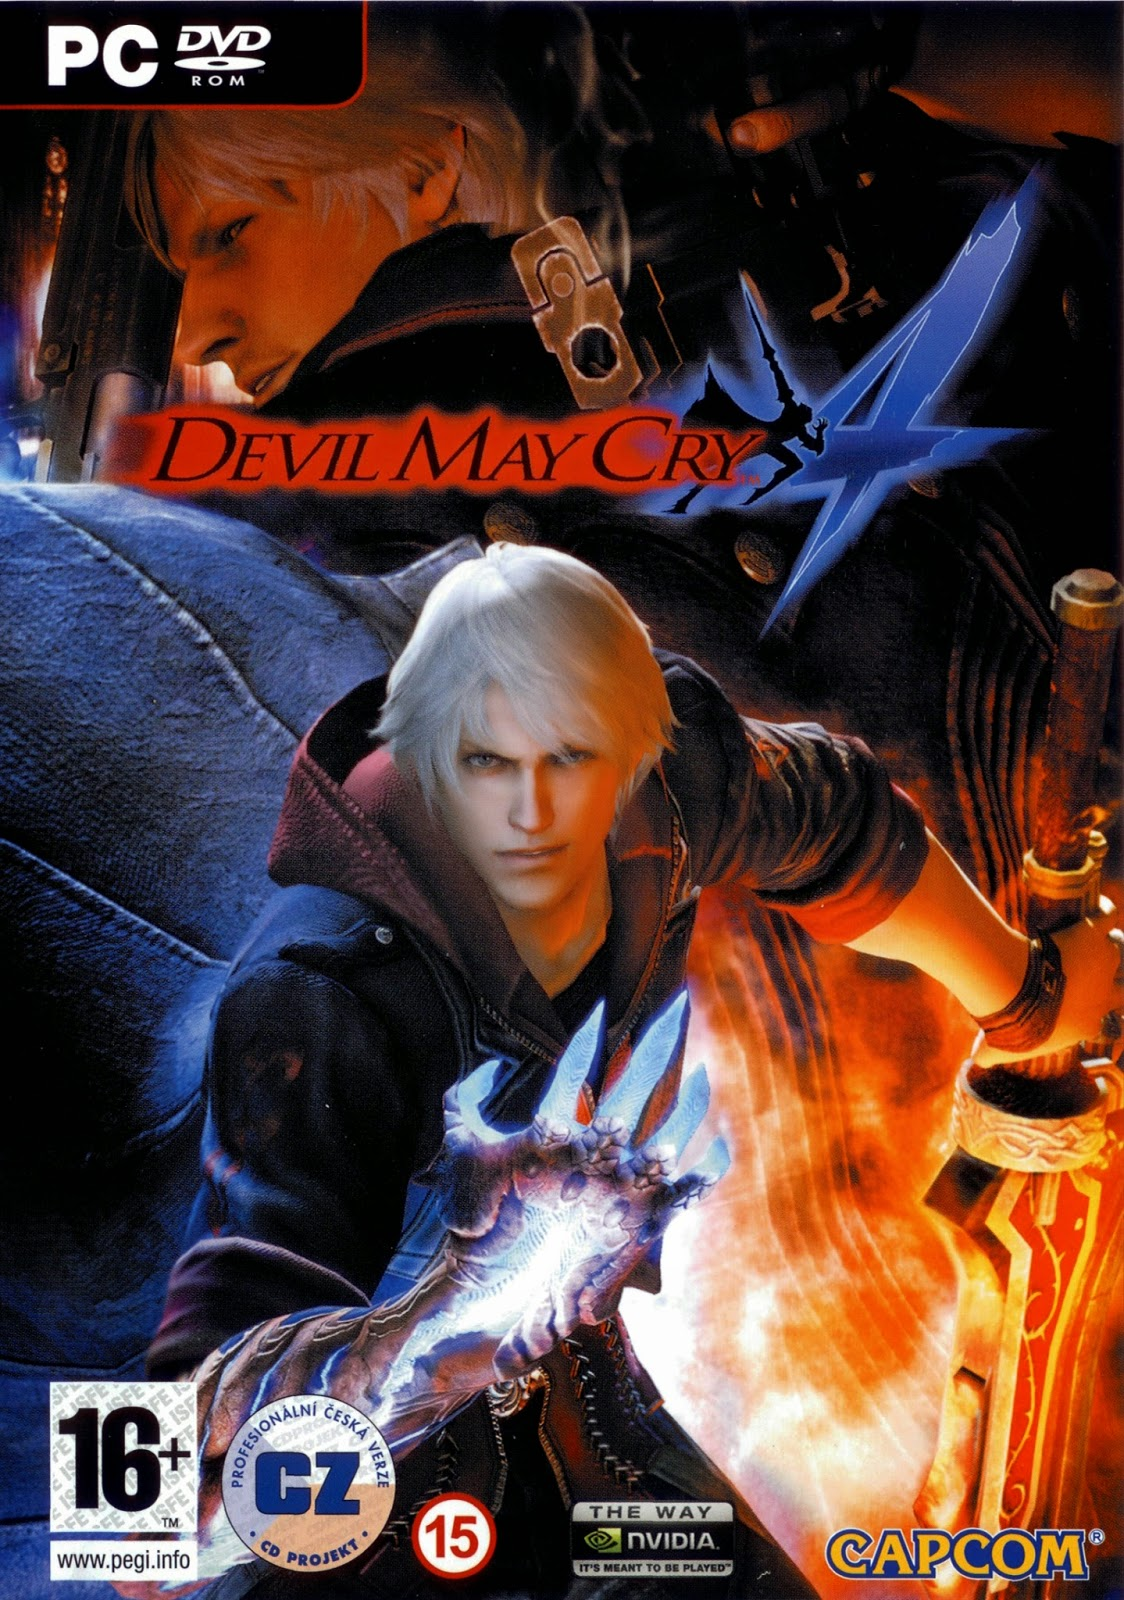 DEVIL MAY CRY 4-REPACK